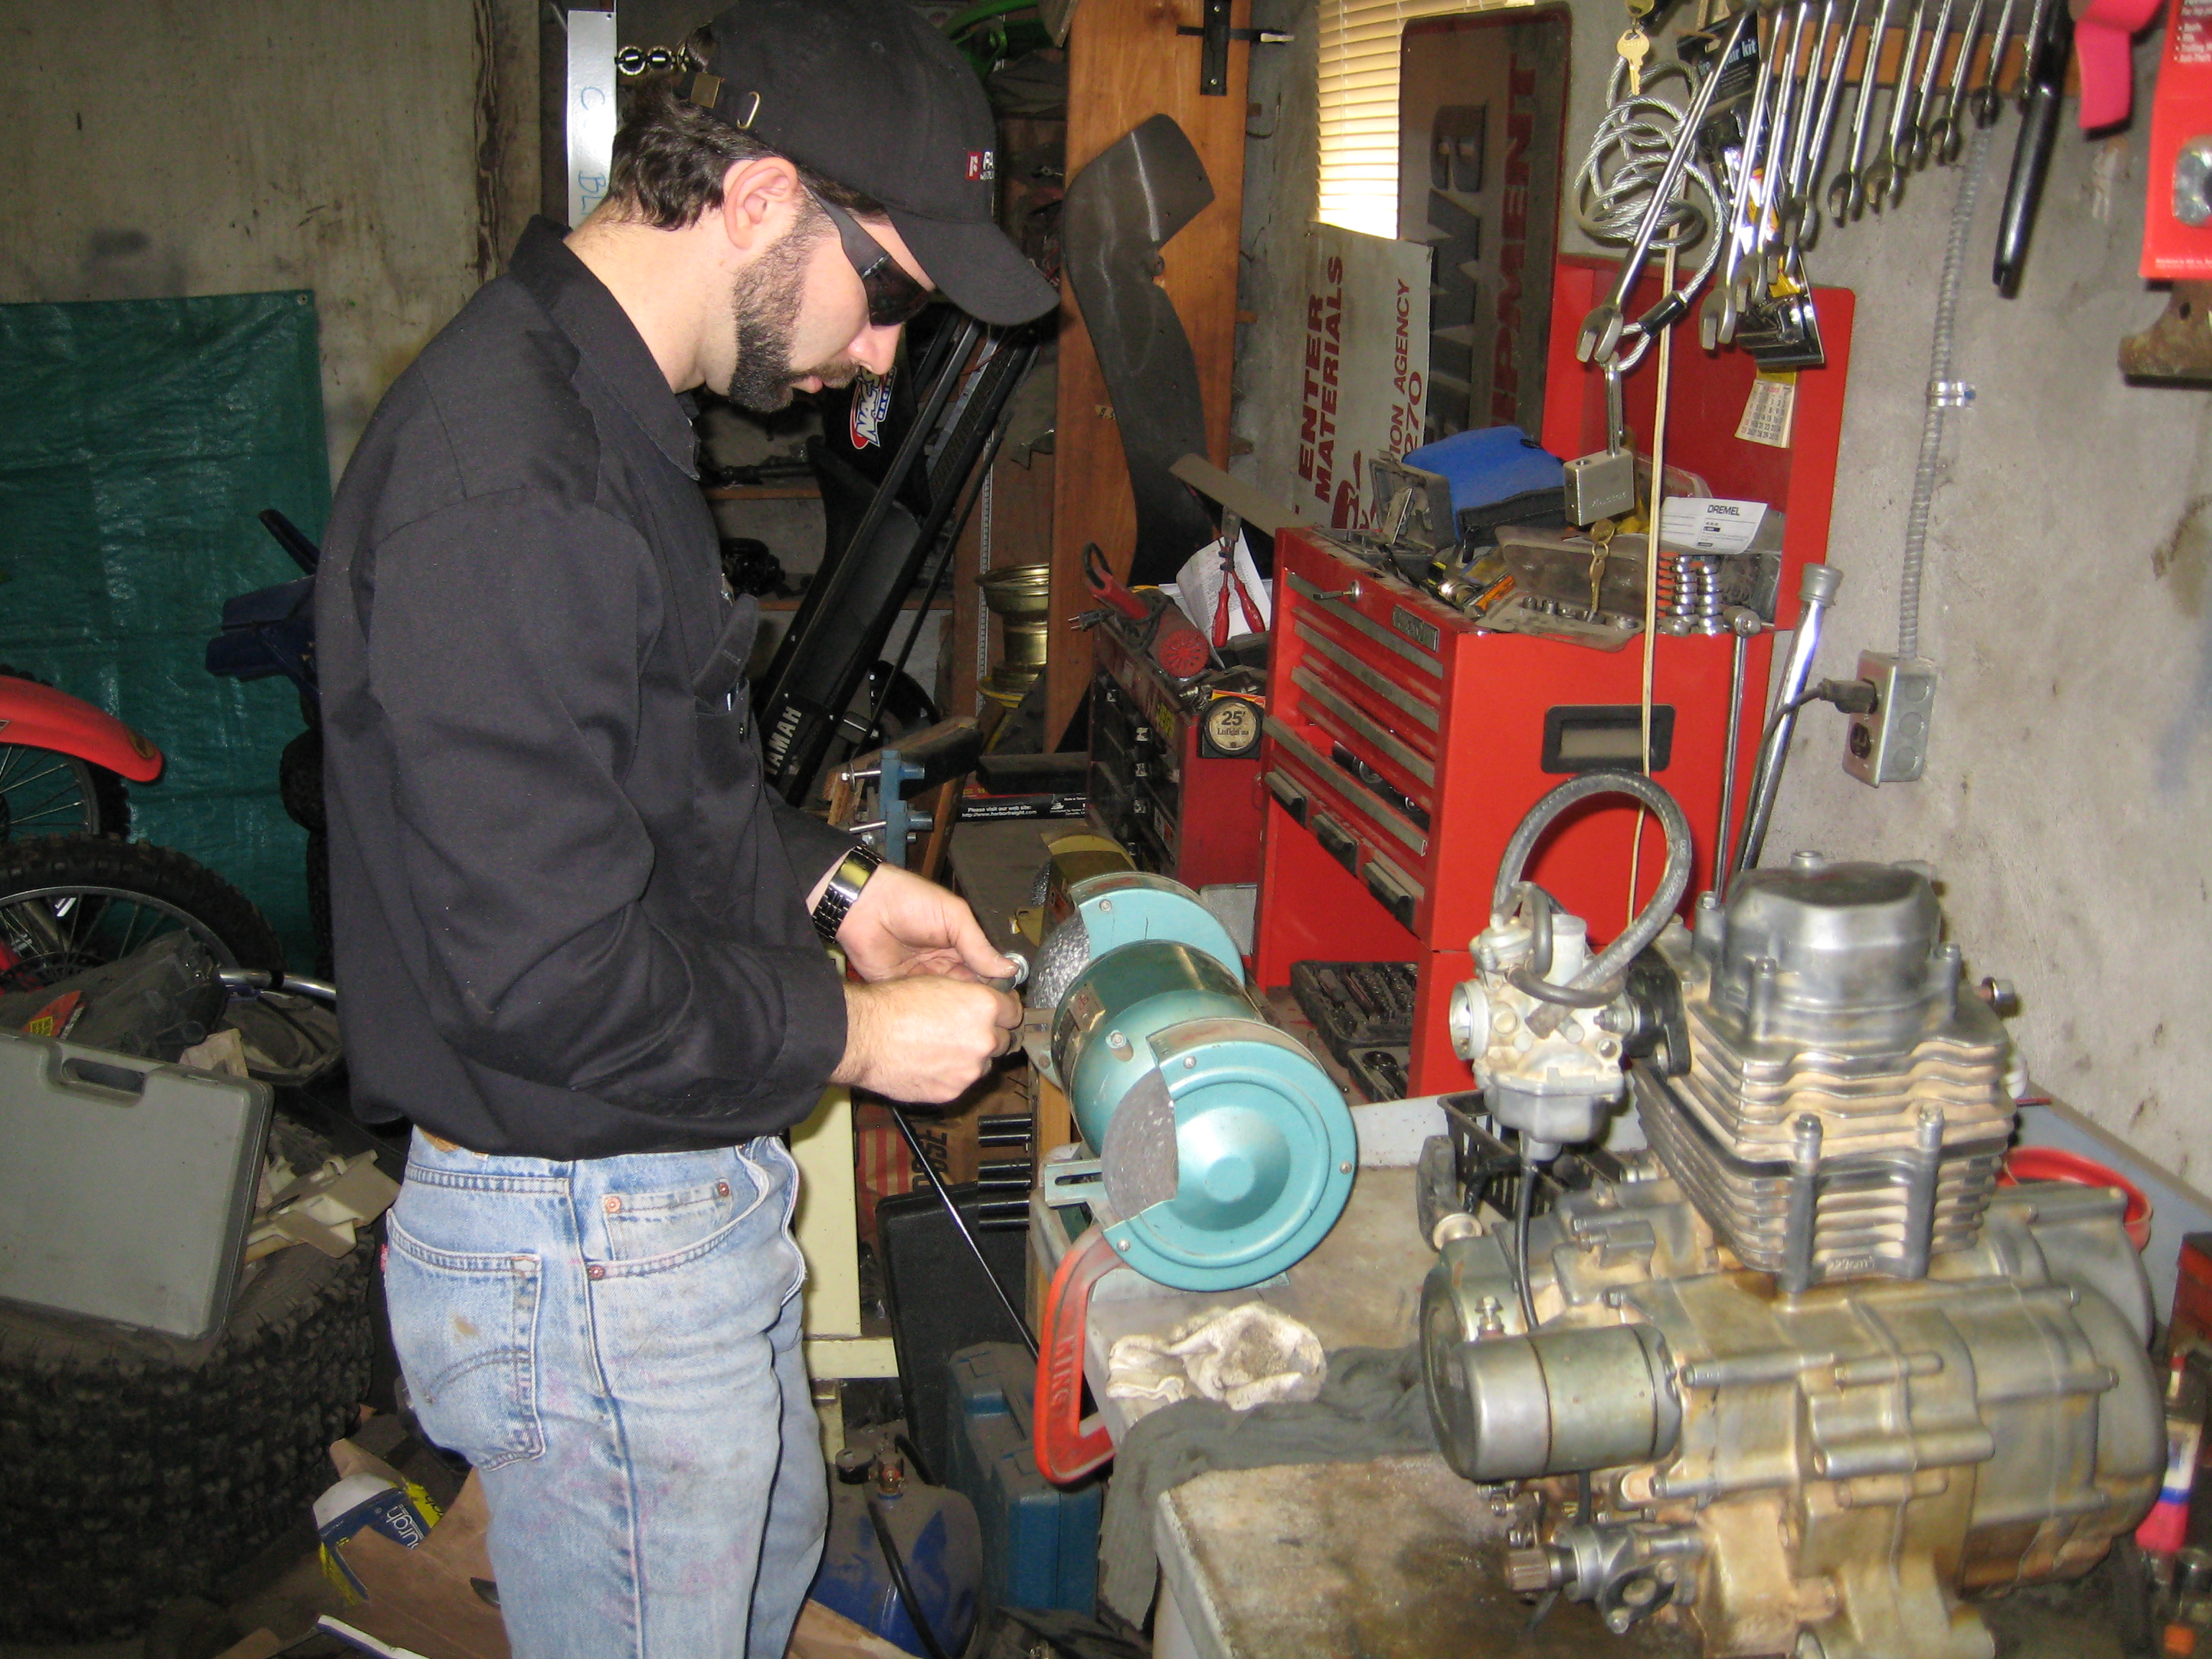 Cleaning the parts with a wire wheel